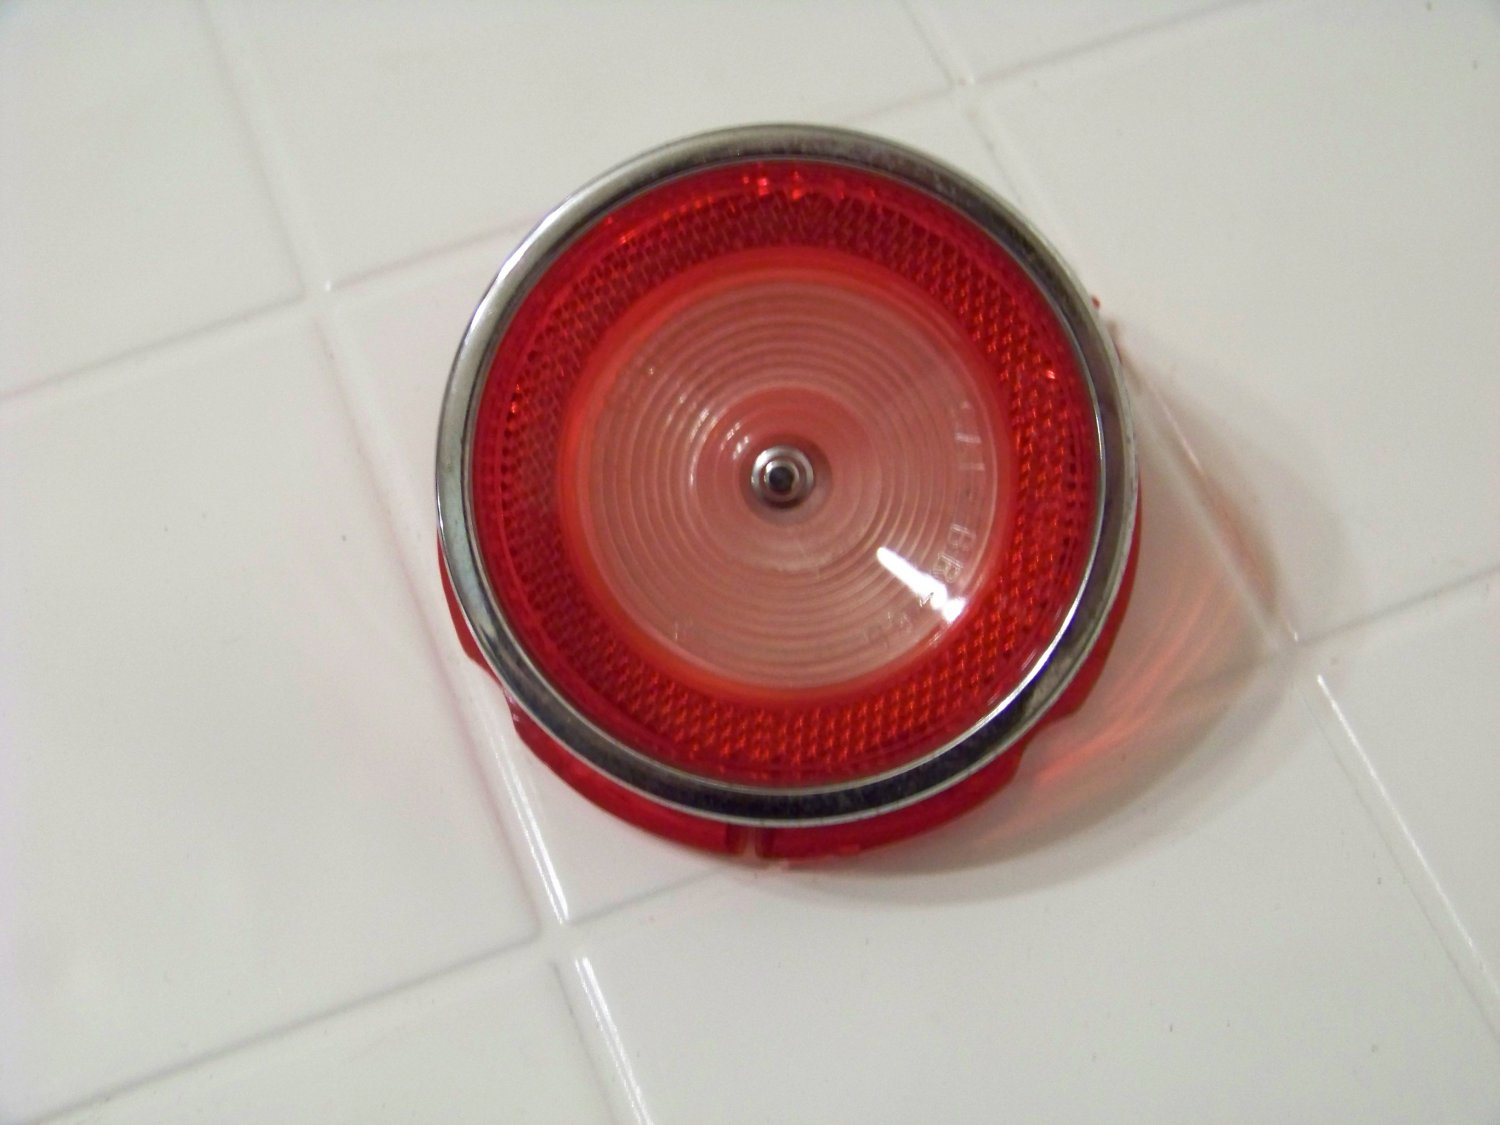 1965 Chevrolet Chevy biscayne back up lens  glo-brite t-6311 sae br 65 with trim